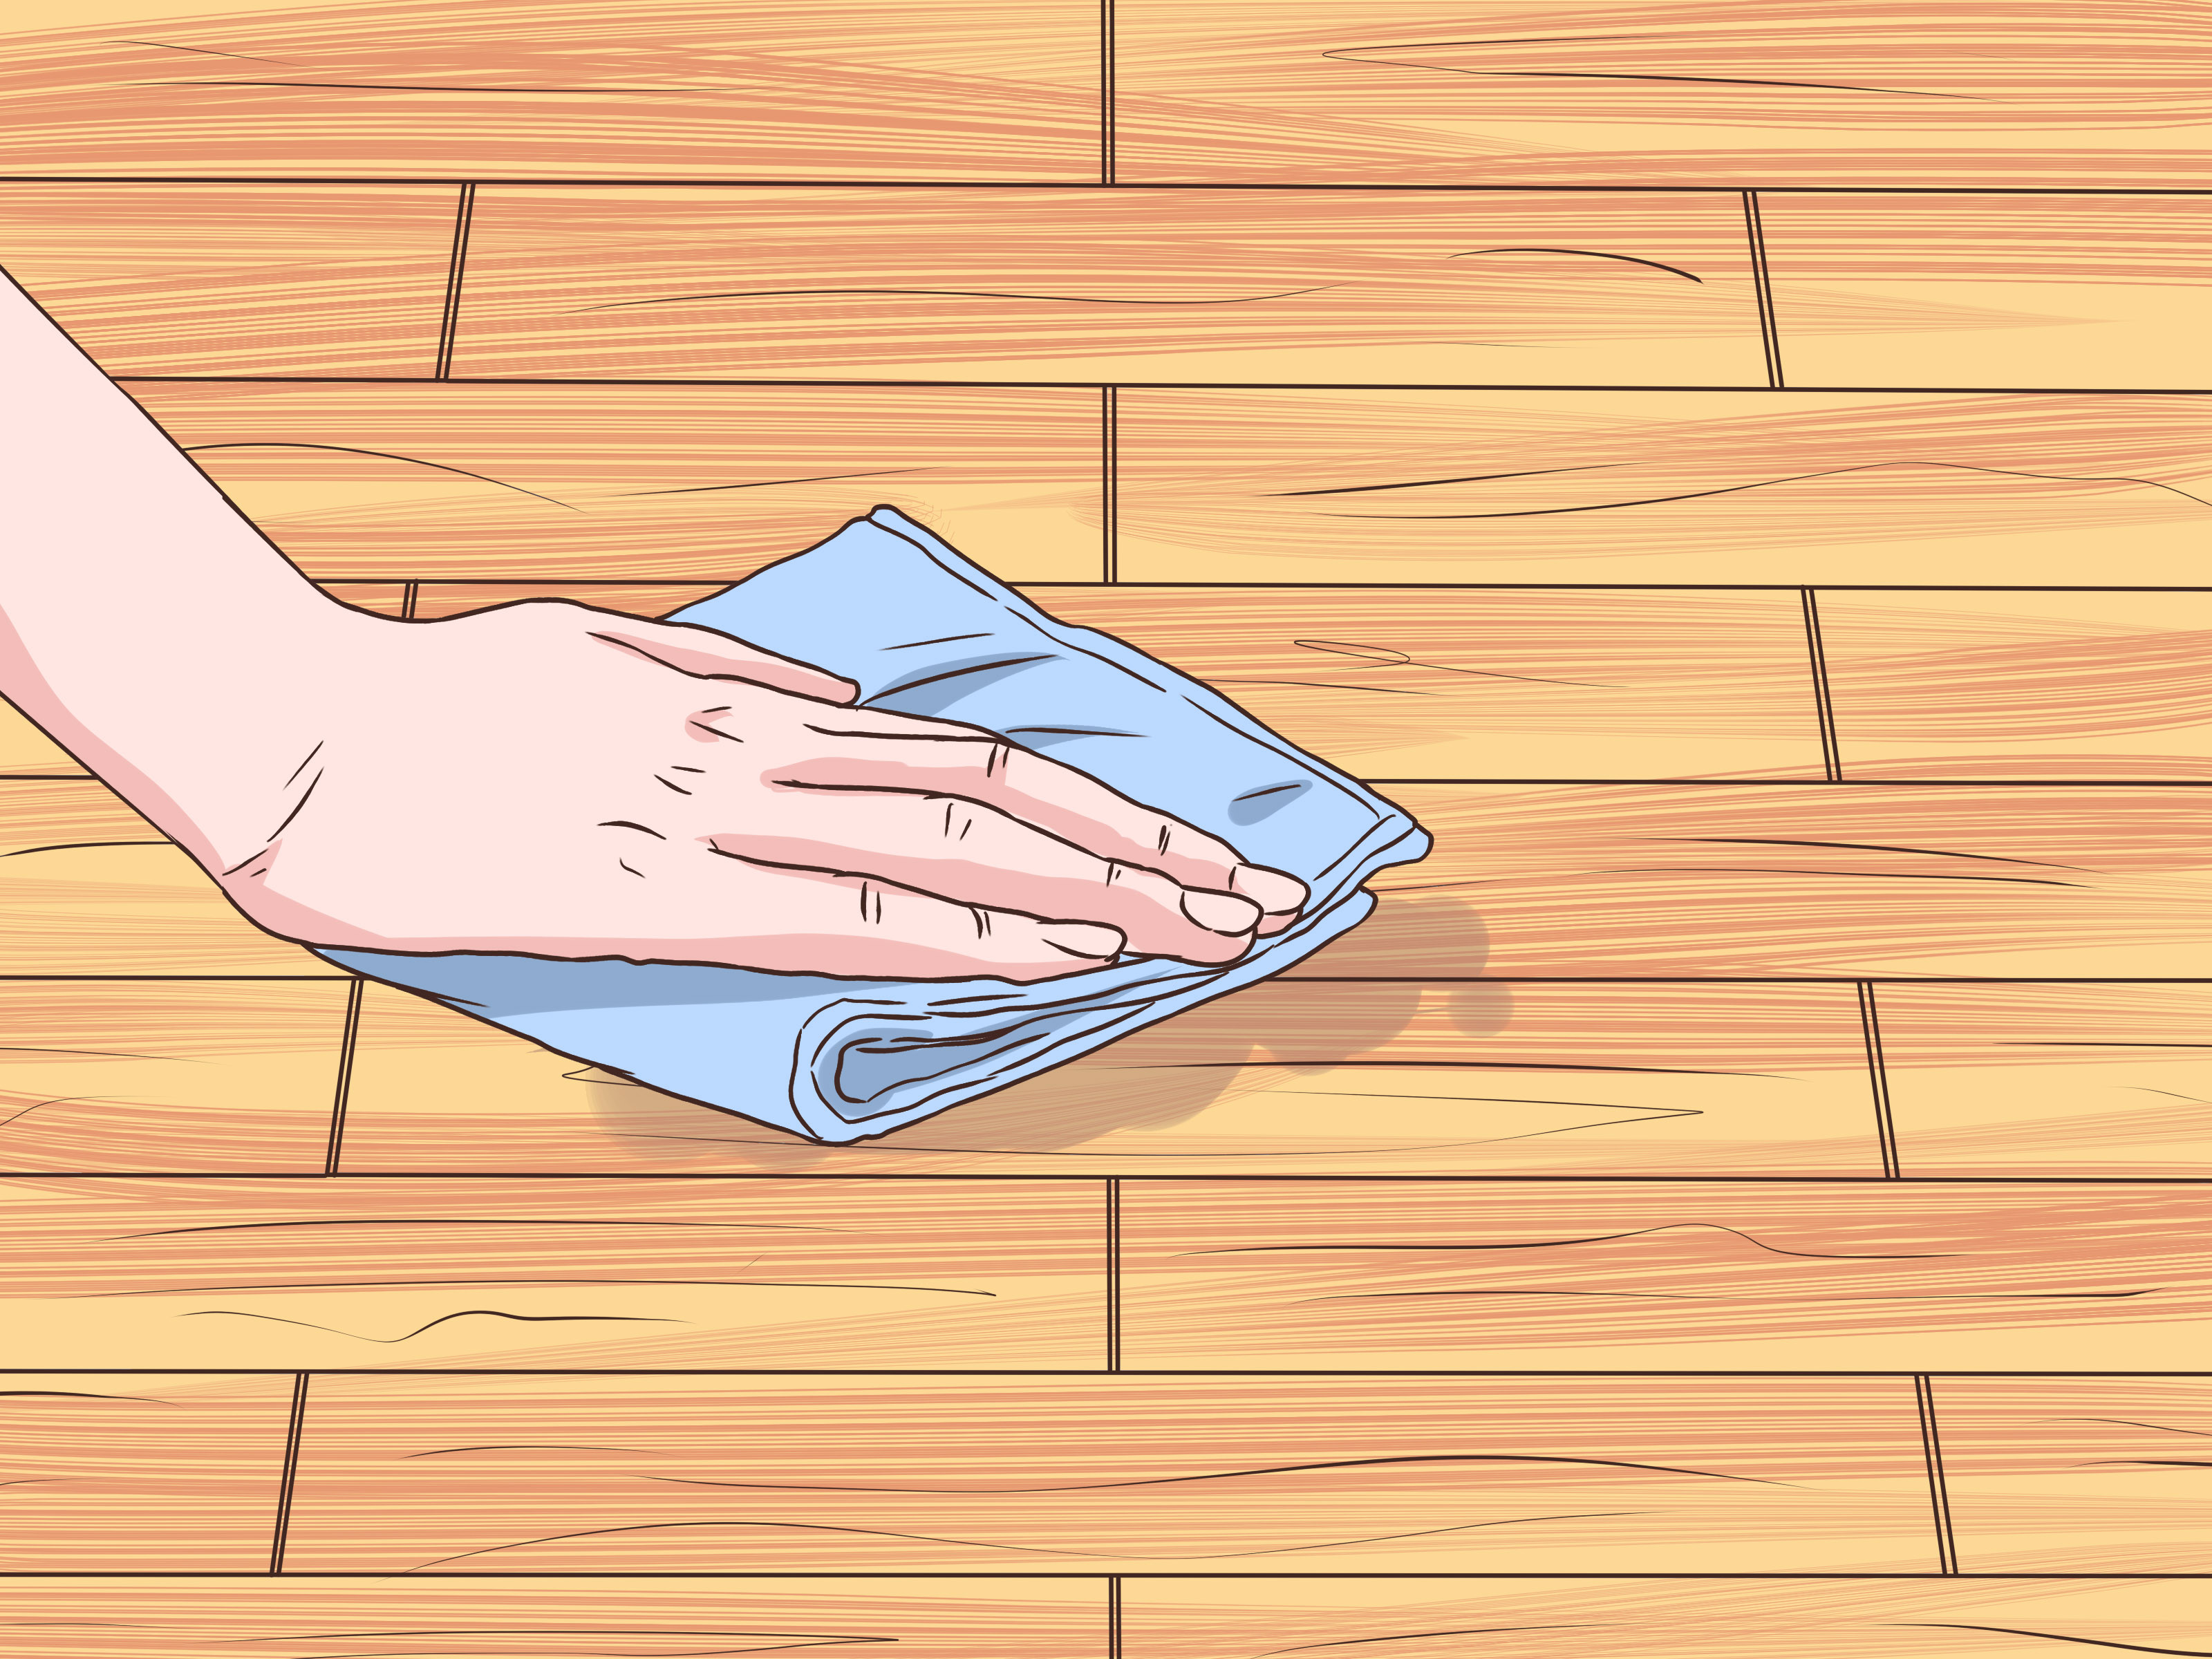 23 Unique Refinishing Old Hardwood Floors Diy 2021 free download refinishing old hardwood floors diy of how to clean sticky hardwood floors 9 steps with pictures intended for clean sticky hardwood floors step 9